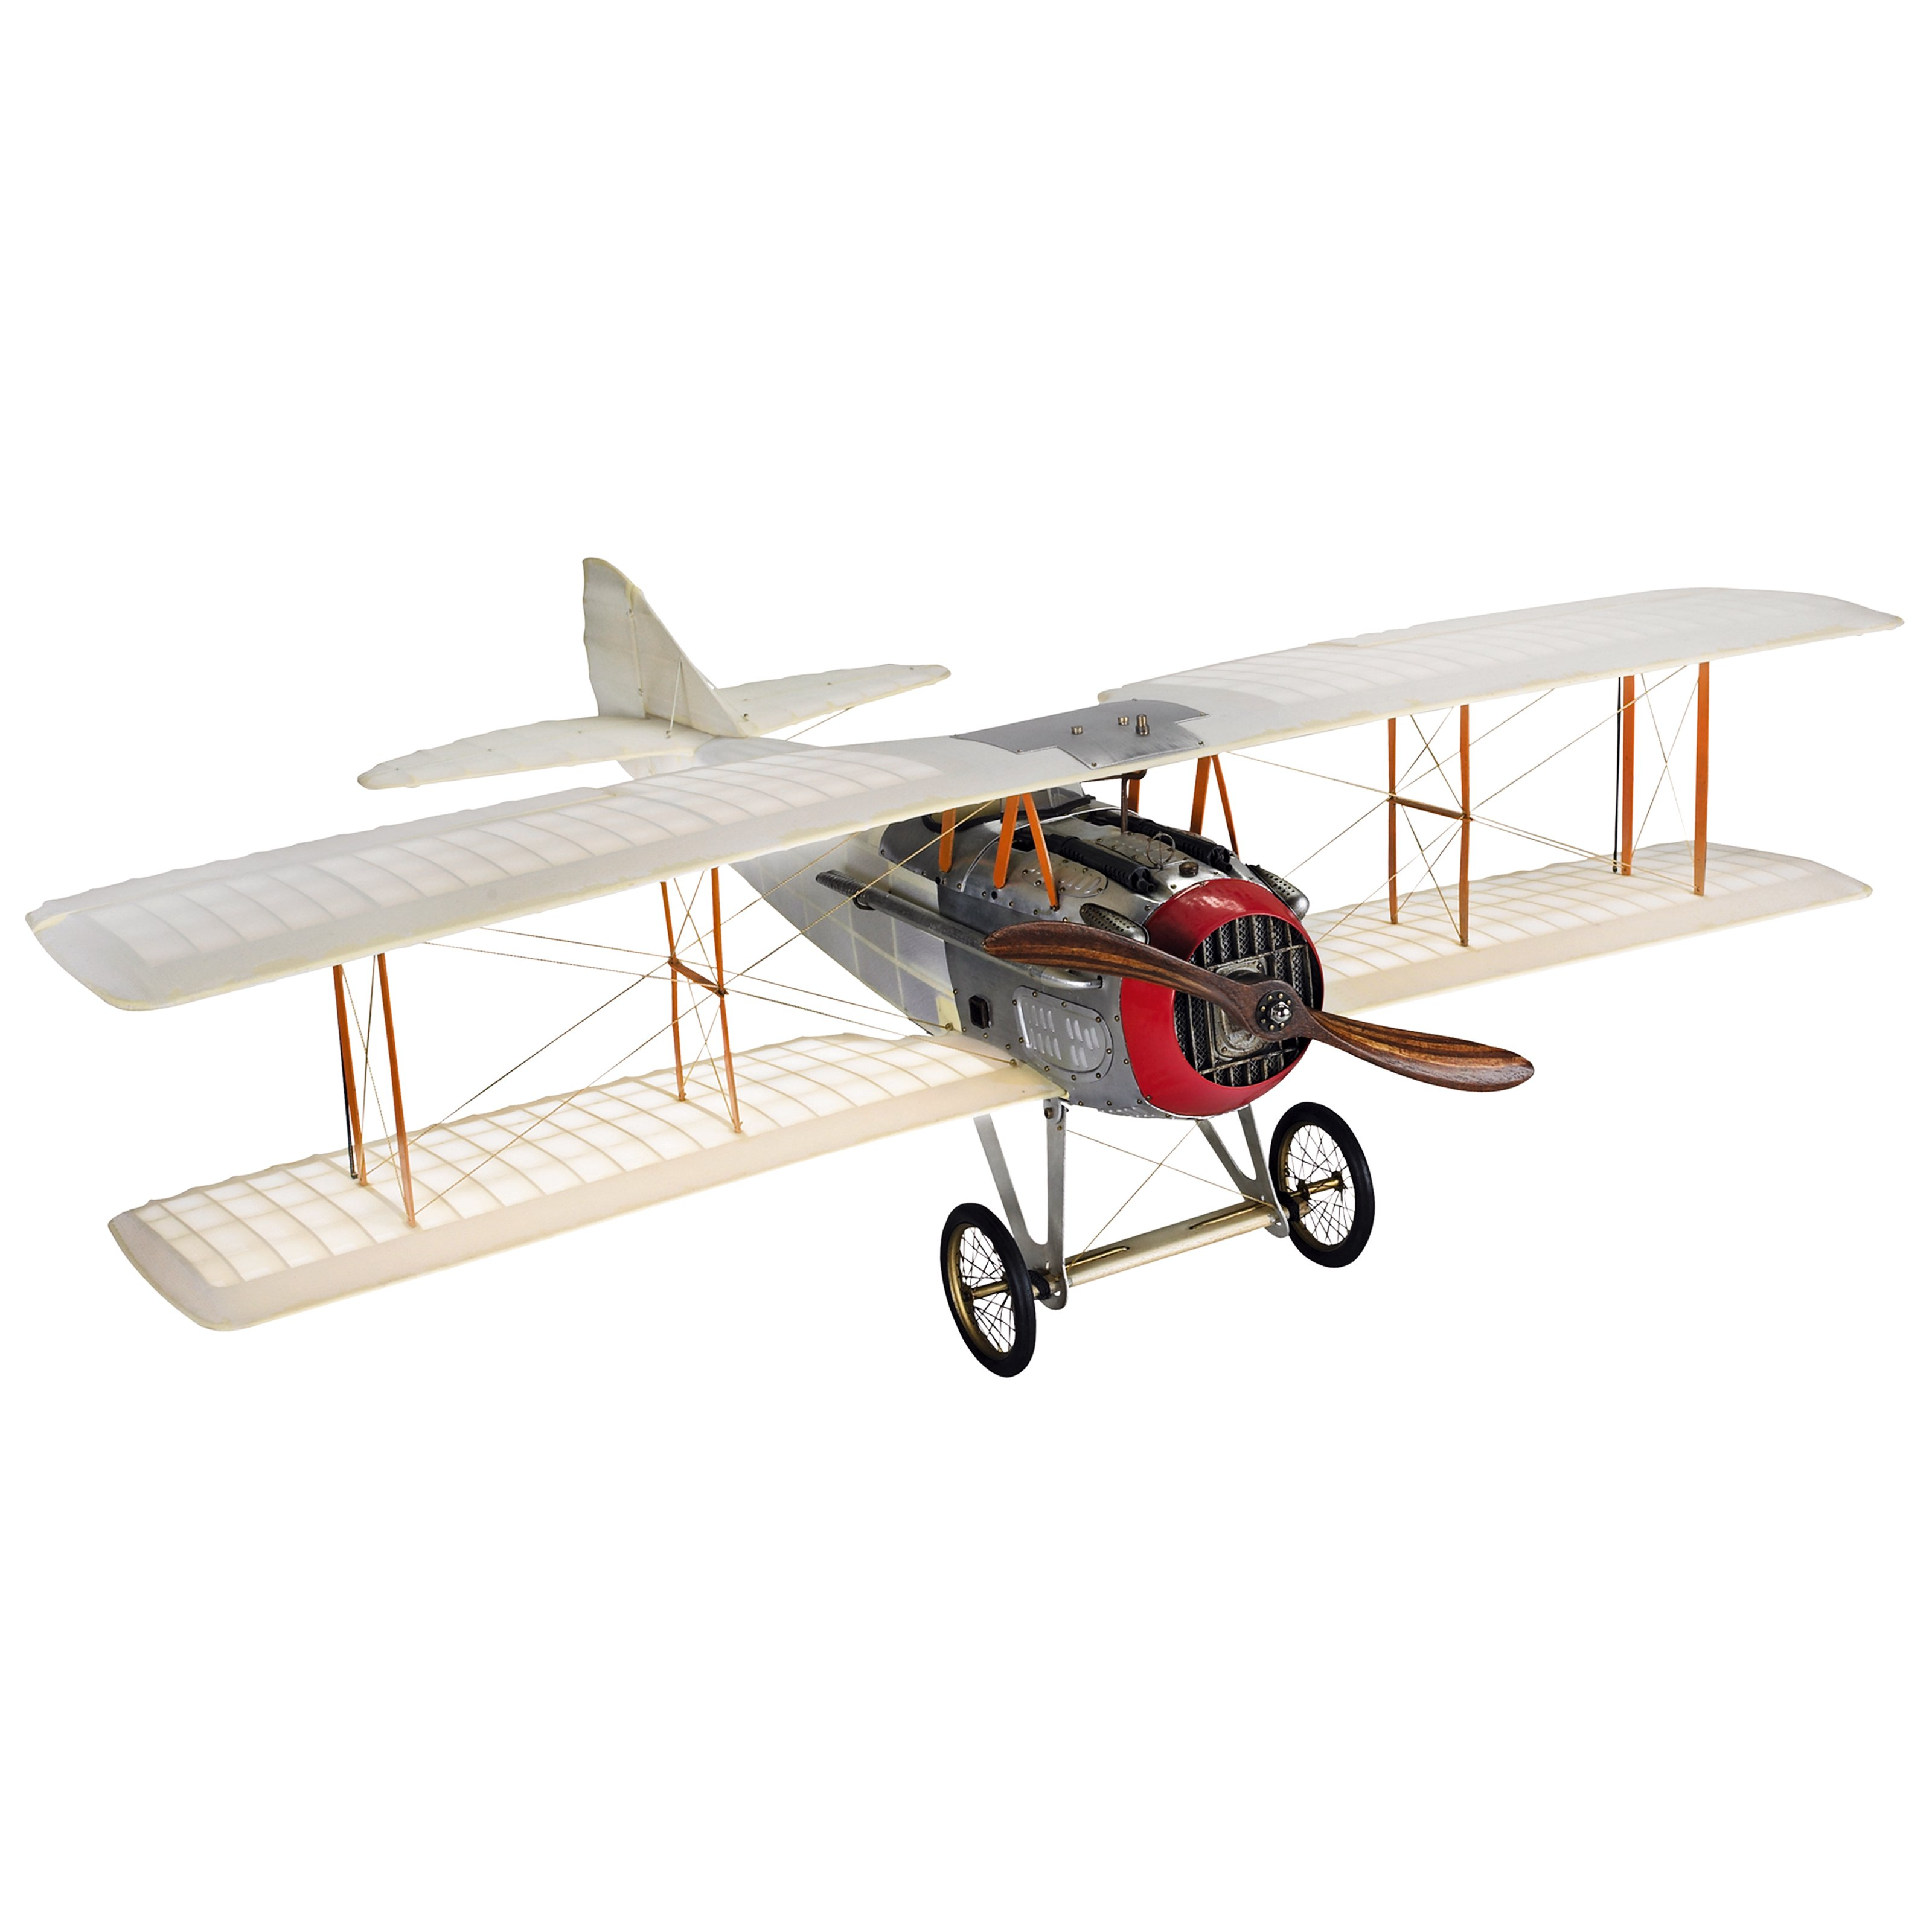 Authentic Models Transparent Spad Model Airplane Medium by Authentic Models